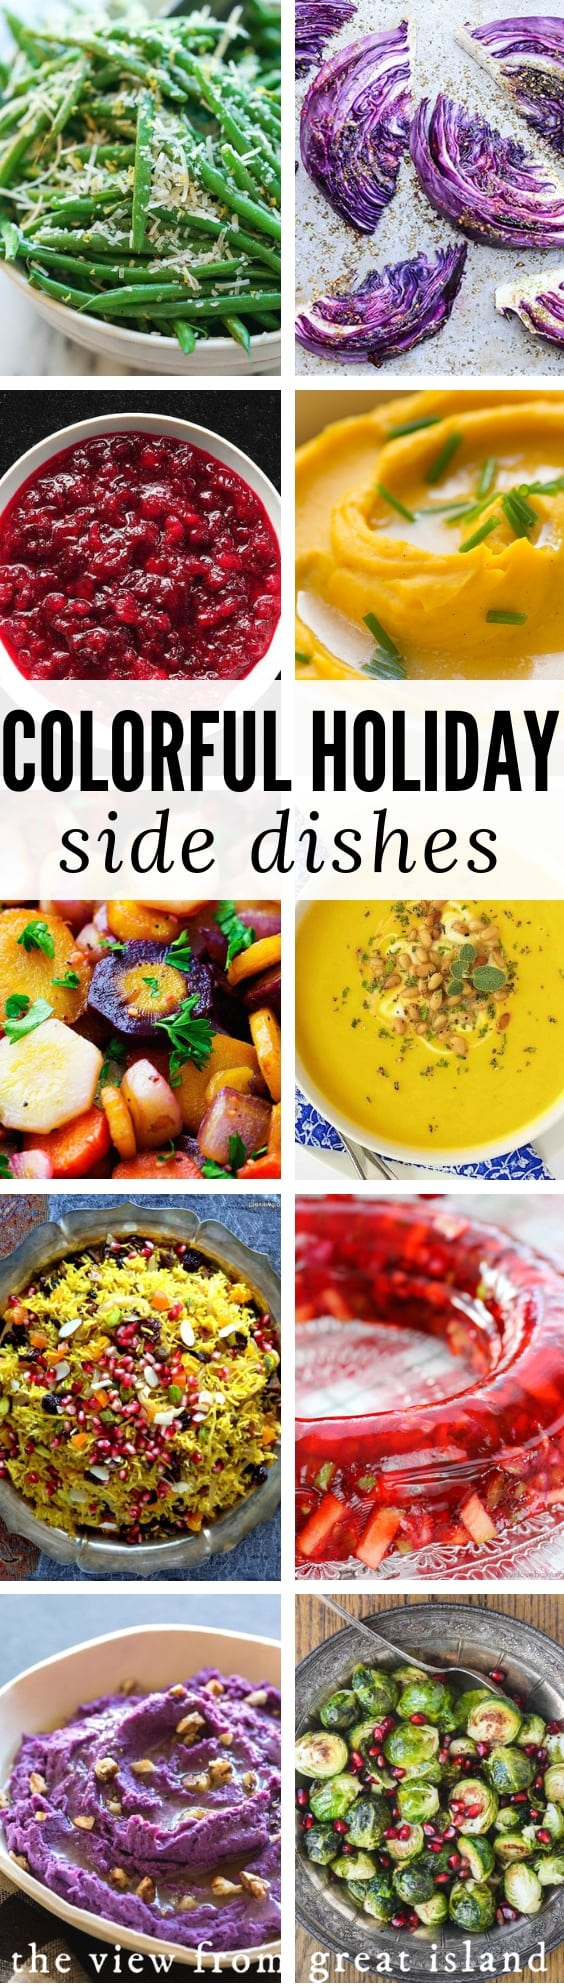 15 Easy and Colorful Thanksgiving Side Dishes ~ is your Thanksgiving table a sea of drab neutrals? What a turnoff! Wake up everybody's taste buds with these 15 vibrant recipes. #Thanksgiving #Christmas #wintersquash #cranberries #carrots #beans #cabbage #seetpotatoes #brusselssprouts #easy #recipe #cornbread